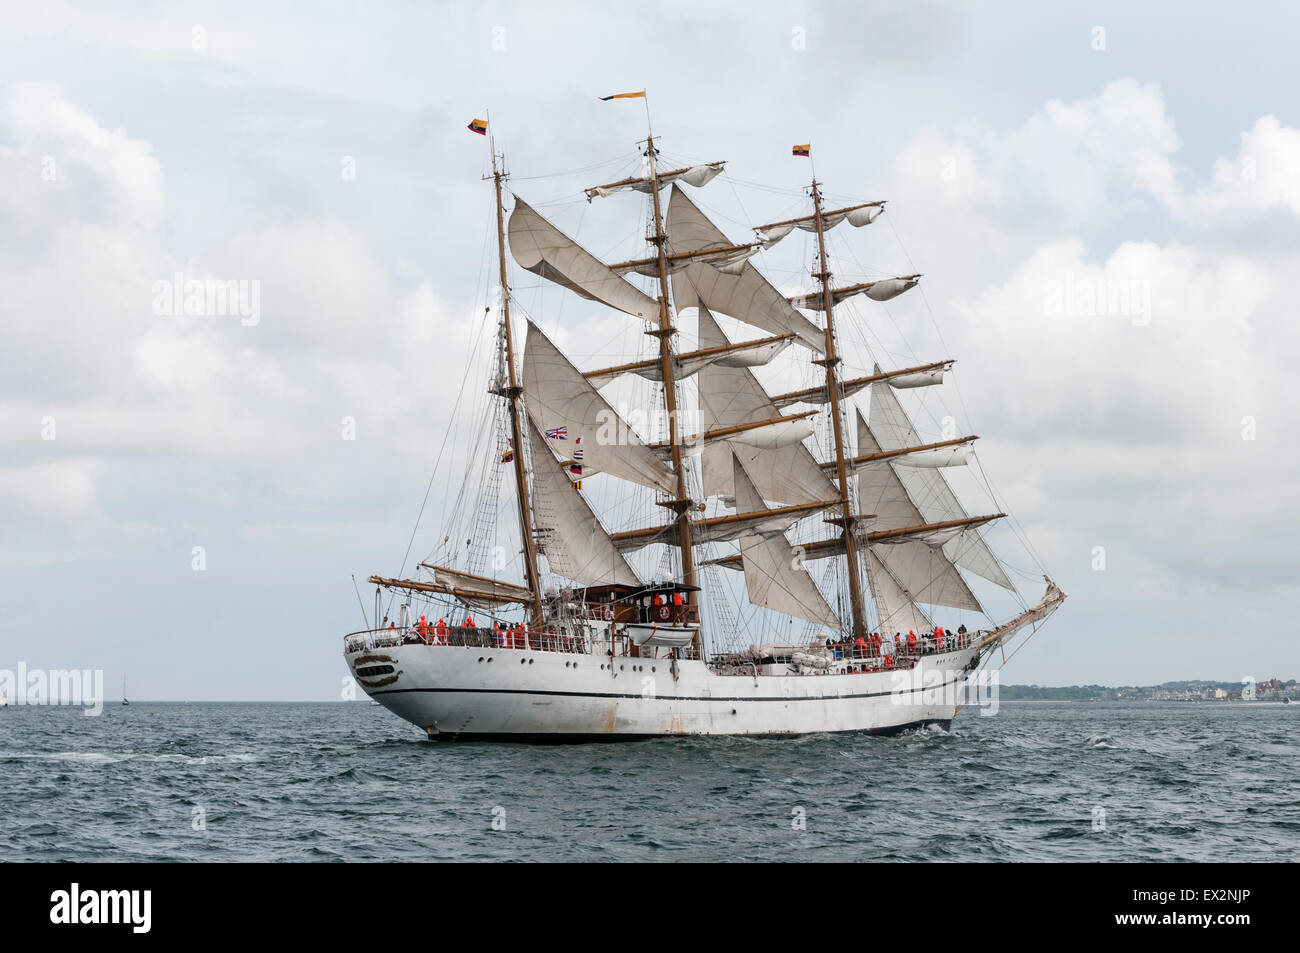 Belfast, Northern Ireland. 5th July, 2015. The Tall Ship Guayas, training vessel for the Ecuadorian Navy, leaves - Stock Image